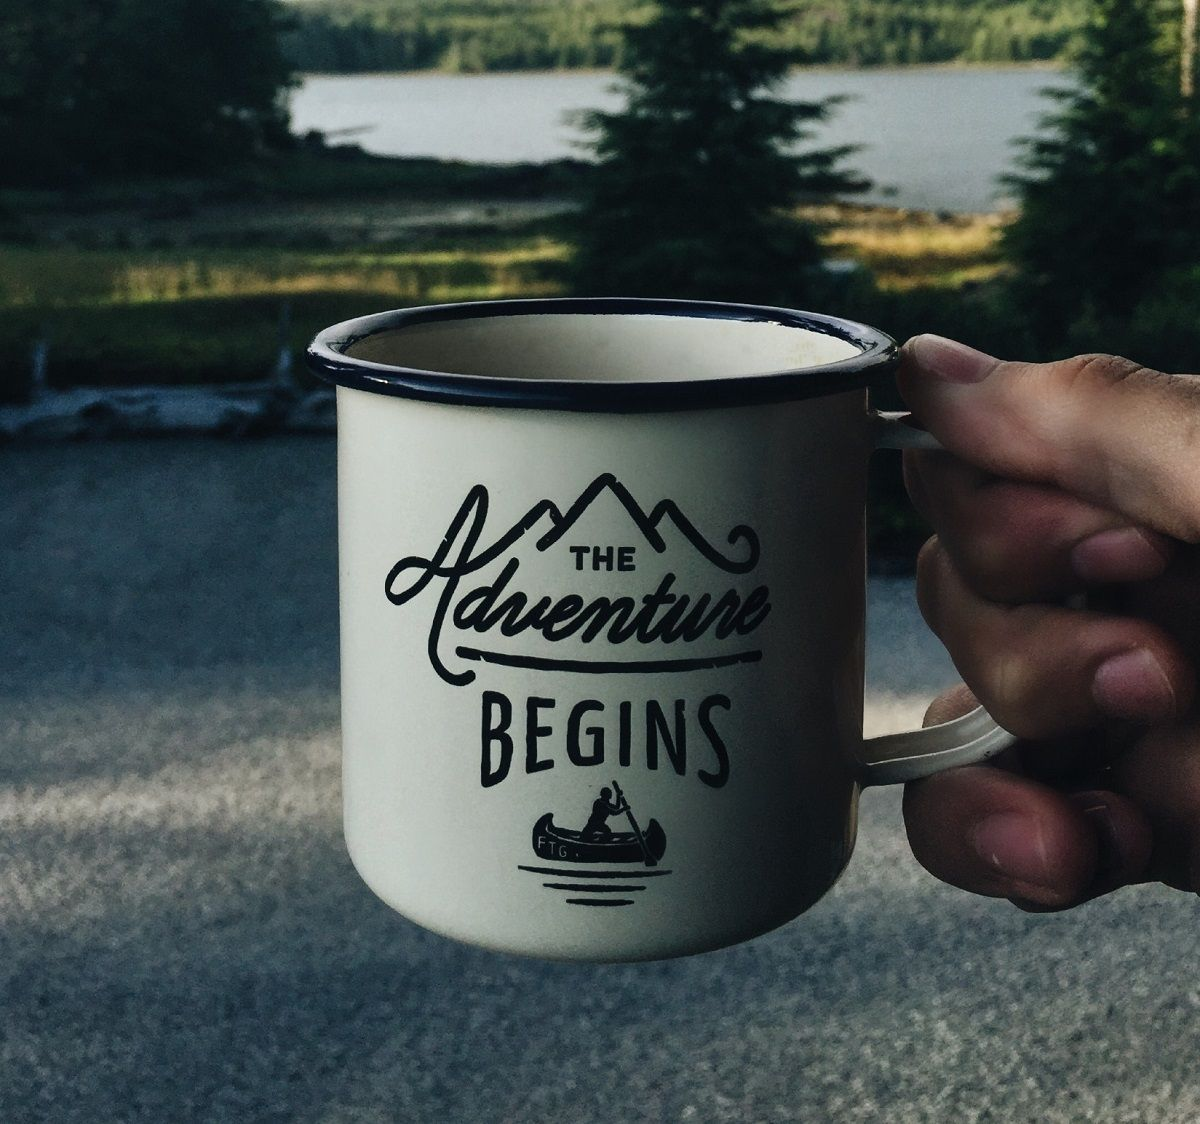 Image of coffee cup with The Adventure Begins text